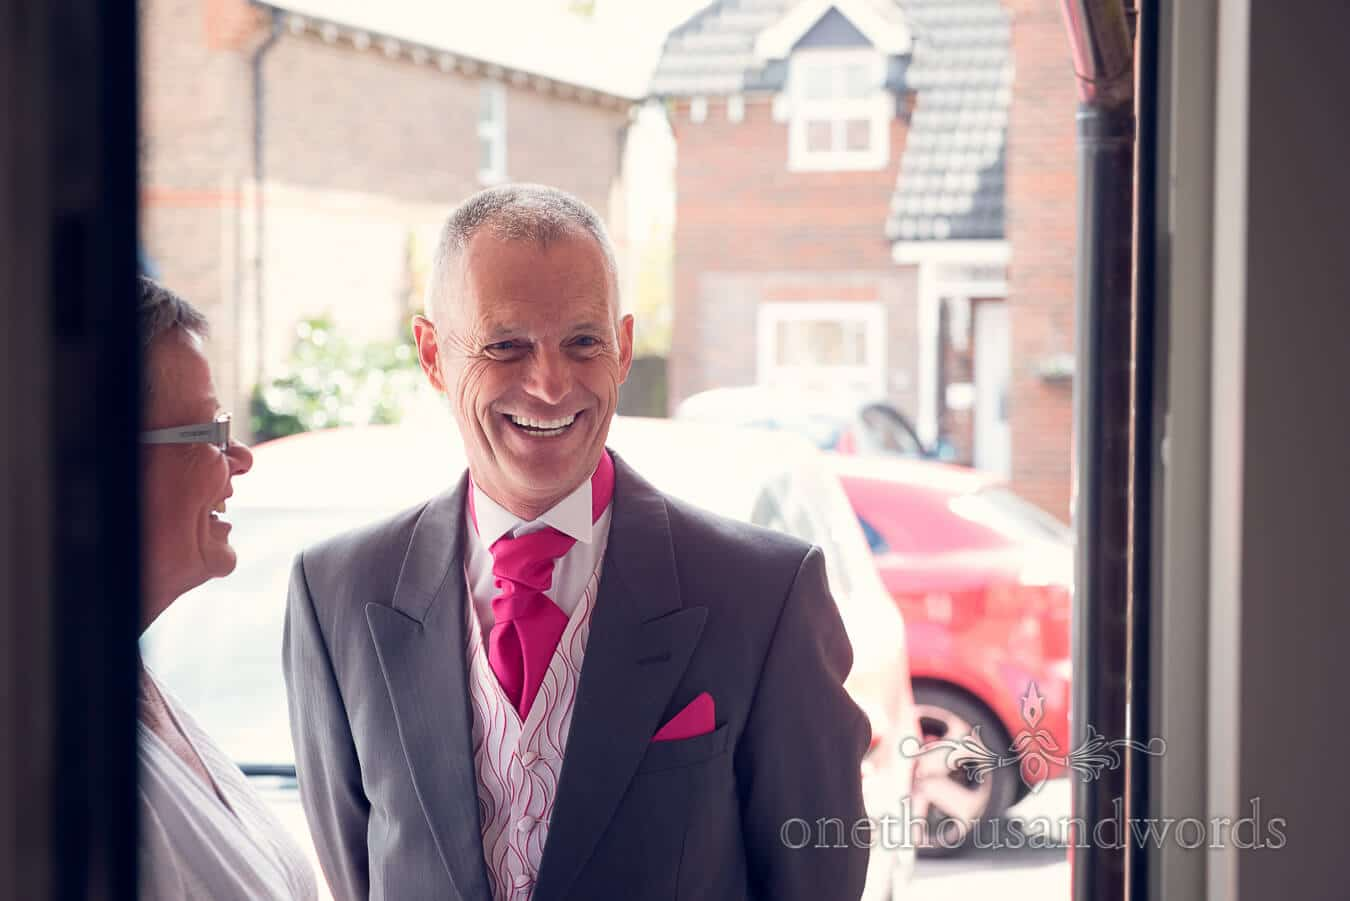 Father of the bride in Pink tie and handkercheif